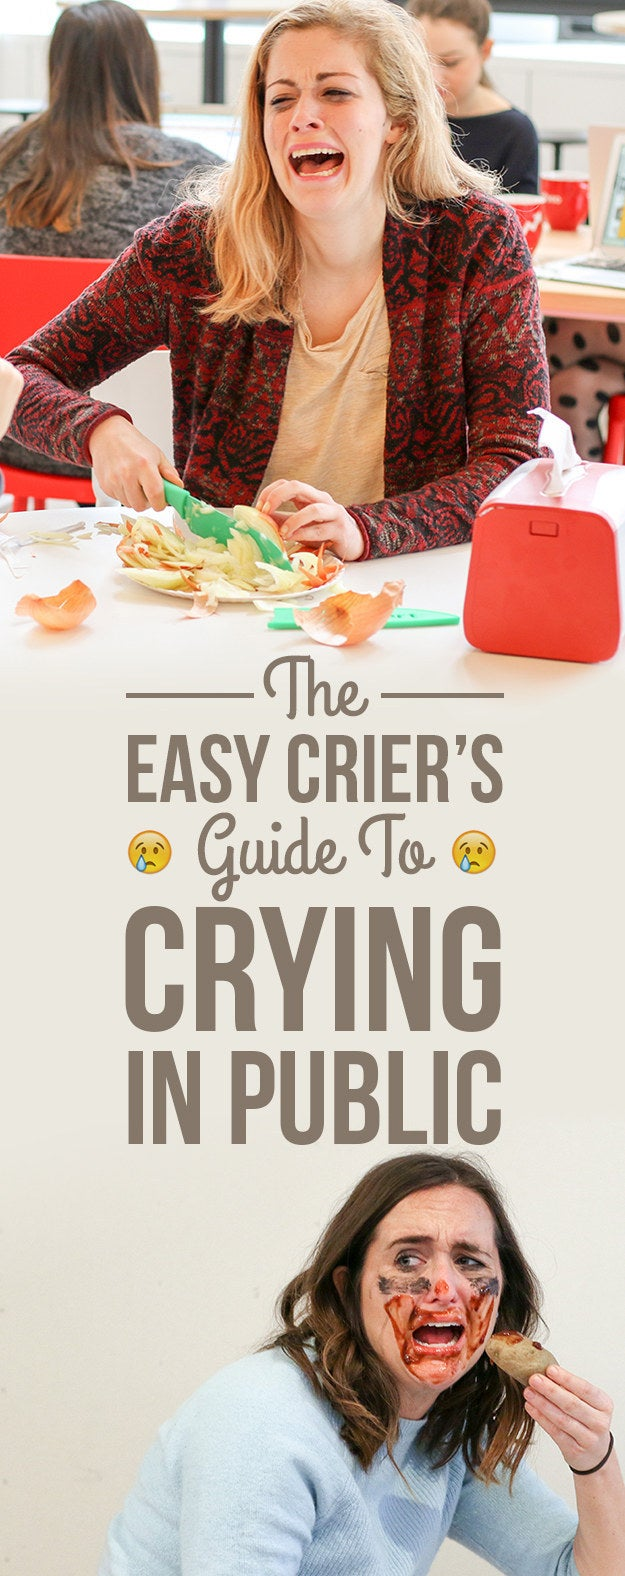 Some people are monsters without souls; the rest of us are easy criers. But just because we cry easily doesn't mean we want everyone to notice. Cry in fear no more: Here are 18 simple ways to cry in public without anyone asking why.